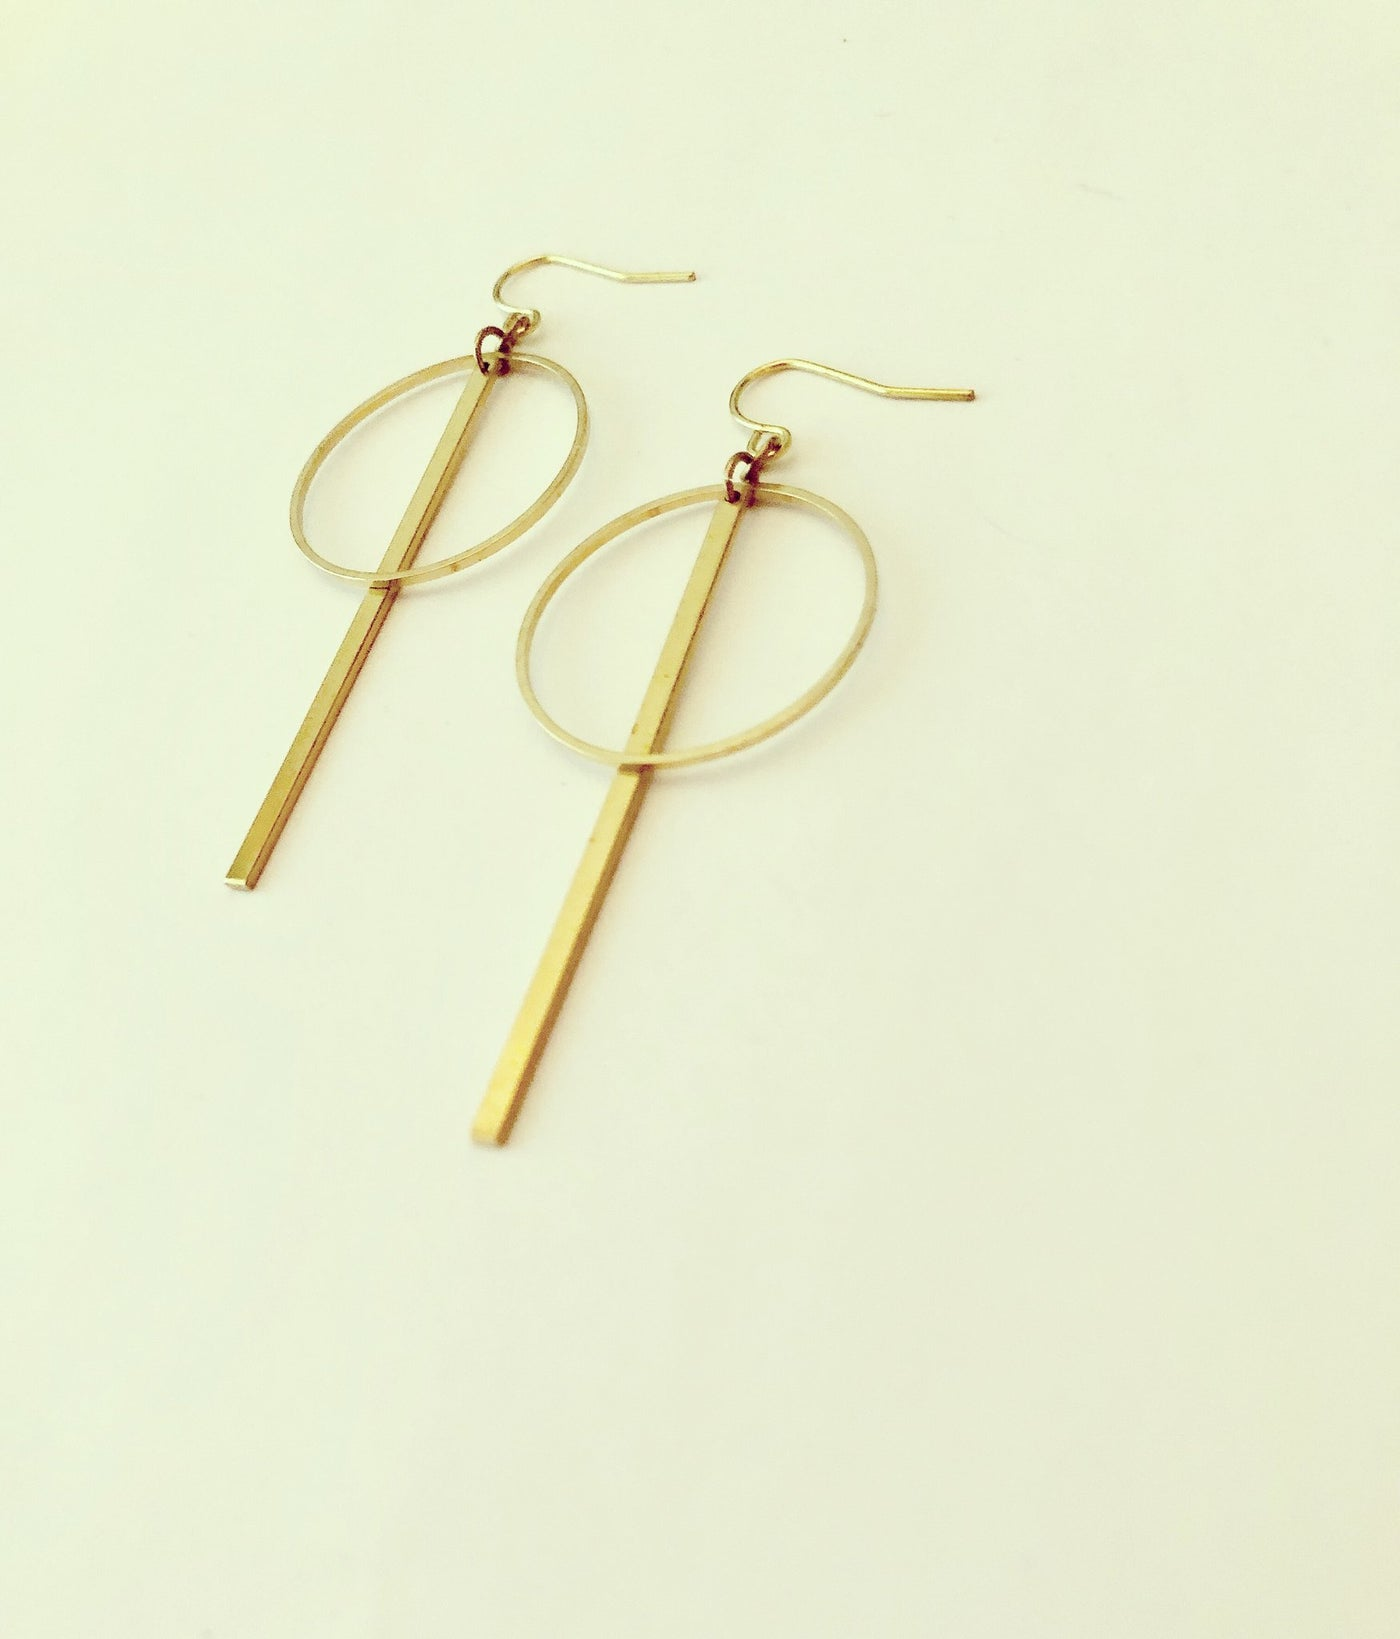 Boucles d'oreilles Nojme - Darlings of Denmark